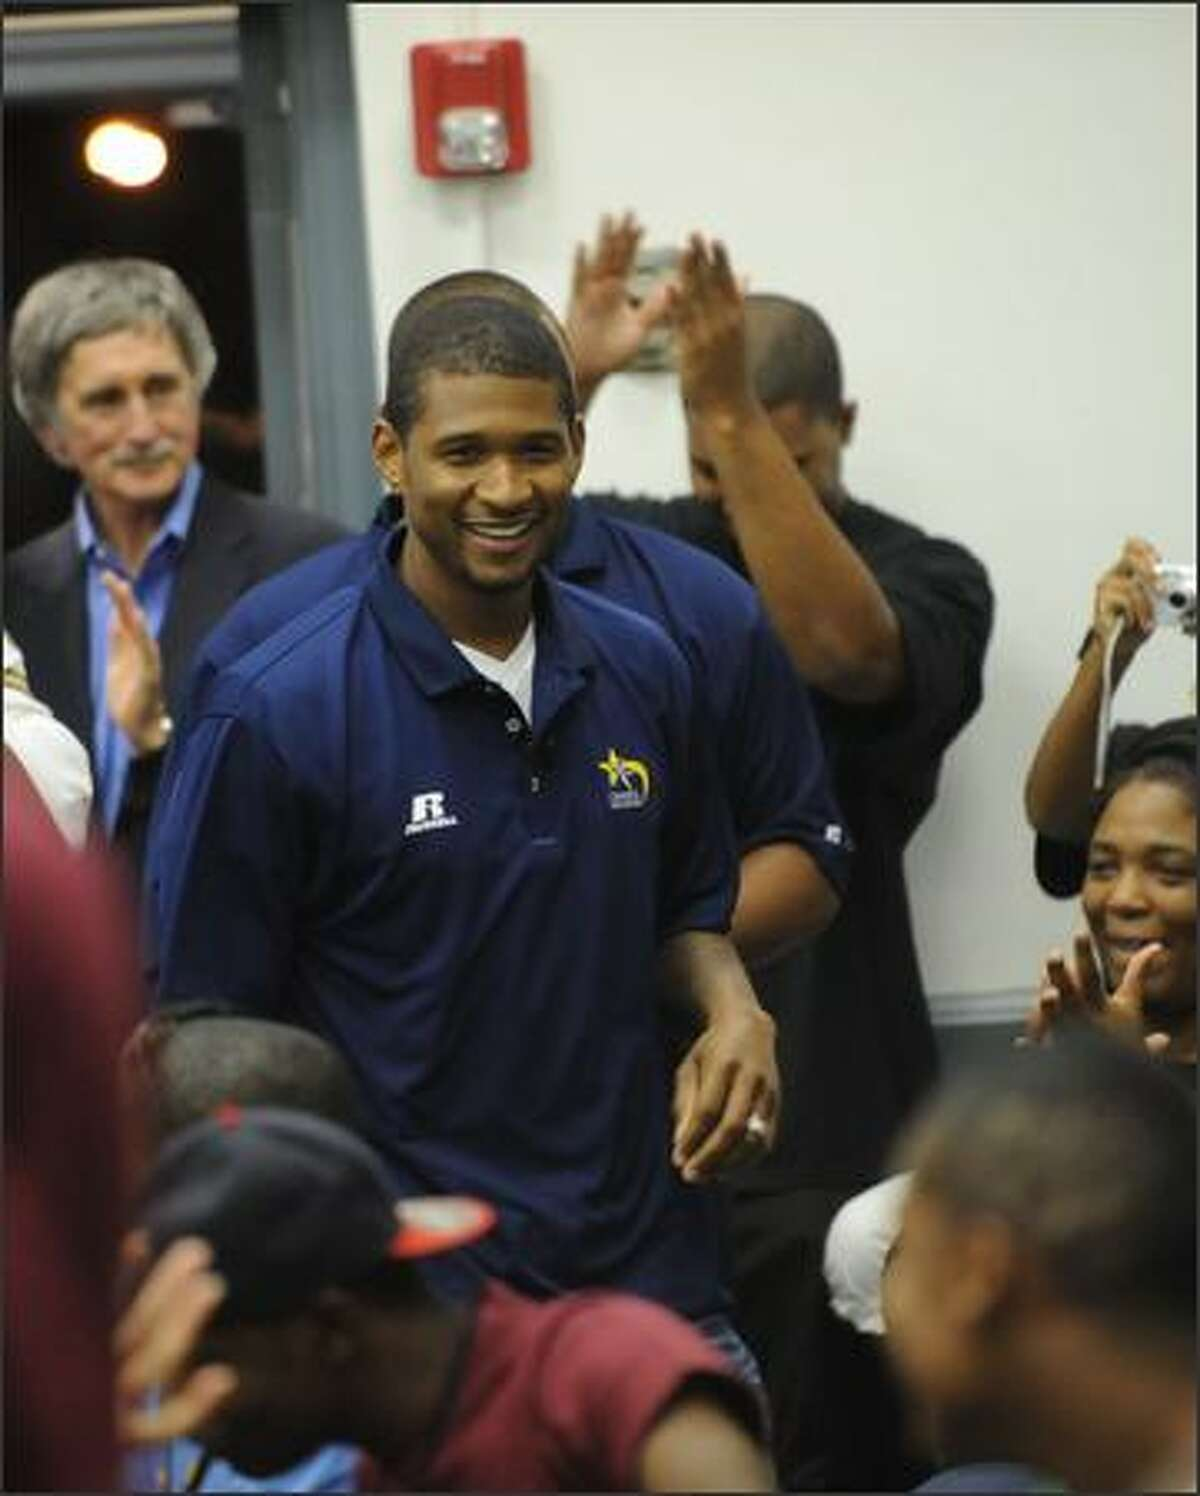 Usher arrives at his 4th Annual Camp New Look held at The Georgia Tech campus in Atlanta, Georgia.